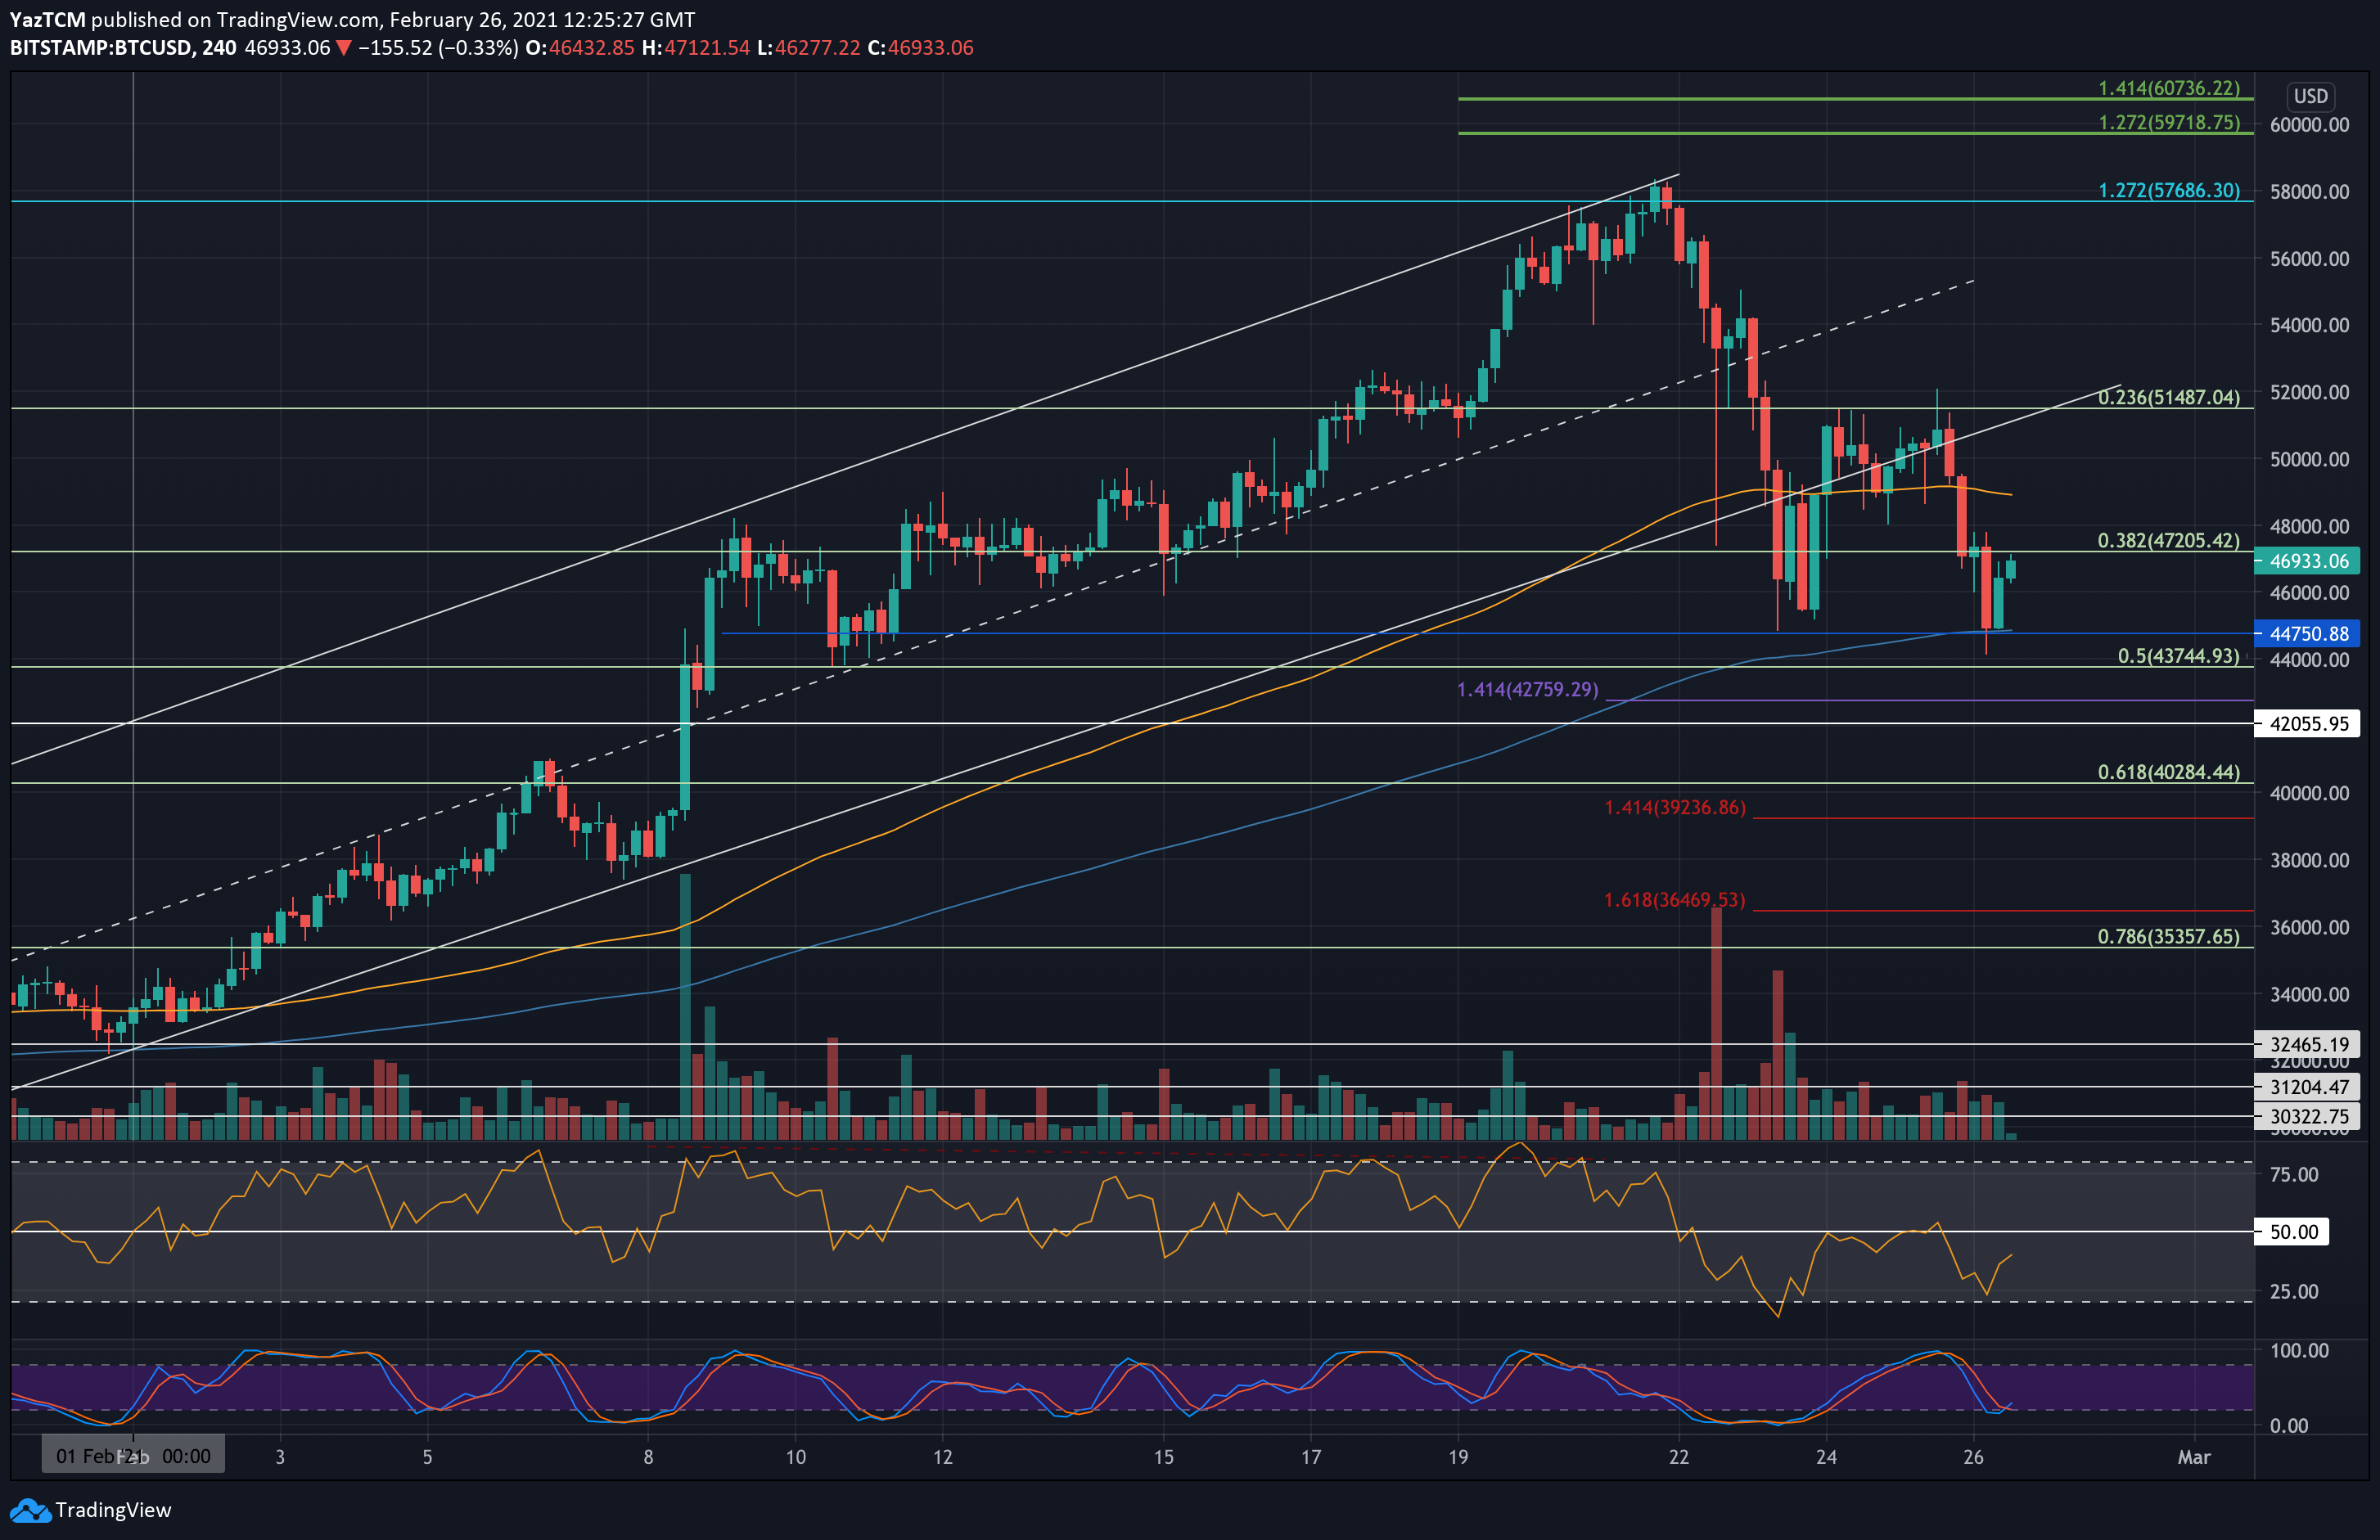 btcusd-4hr-feb26-new